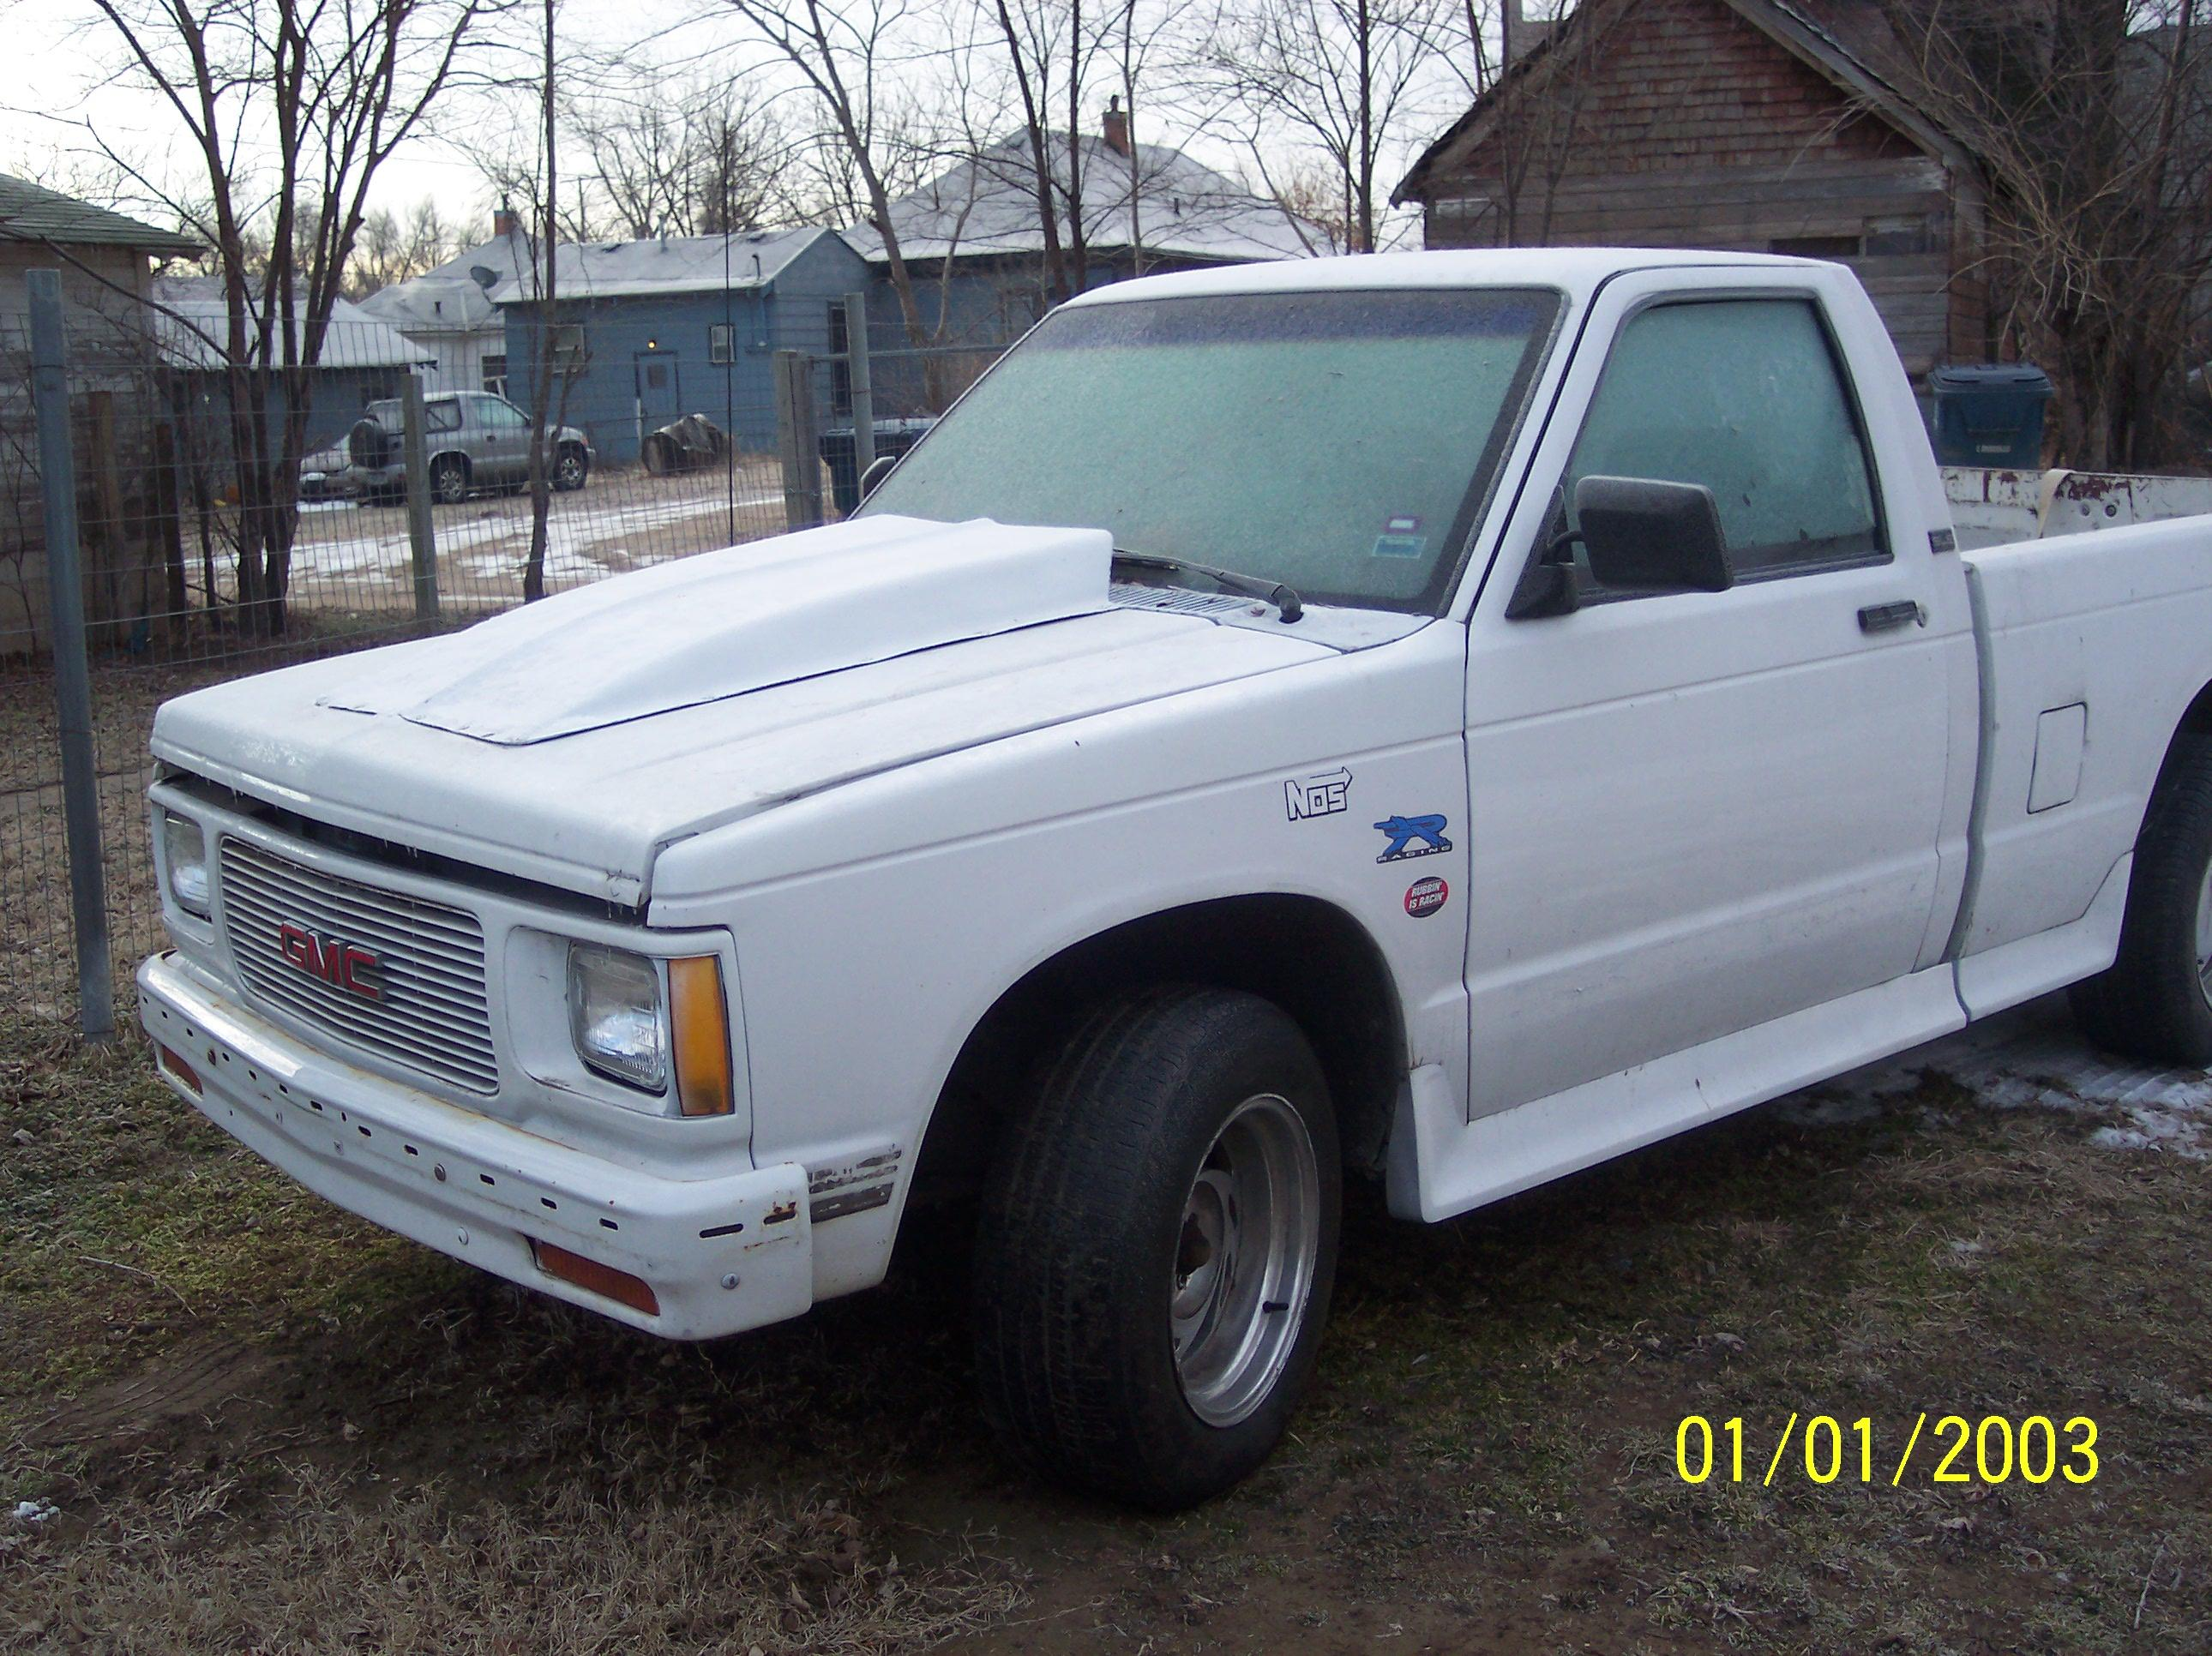 smok3-10 1992 Chevrolet S10 Regular Cab